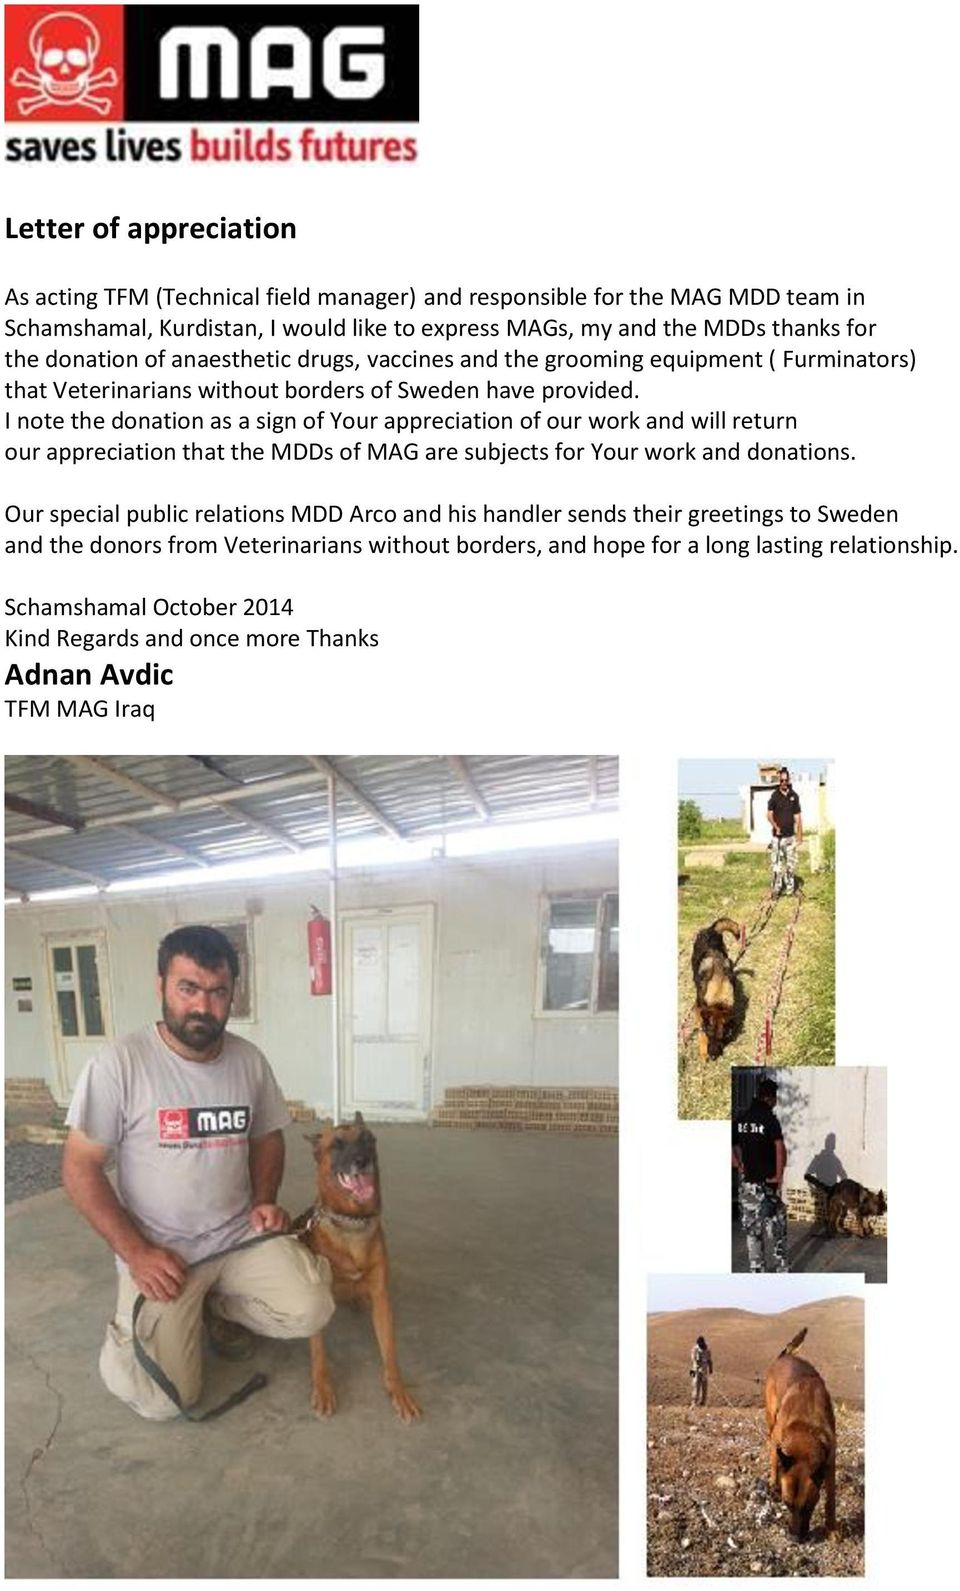 I note the donation as a sign of Your appreciation of our work and will return our appreciation that the MDDs of MAG are subjects for Your work and donations.